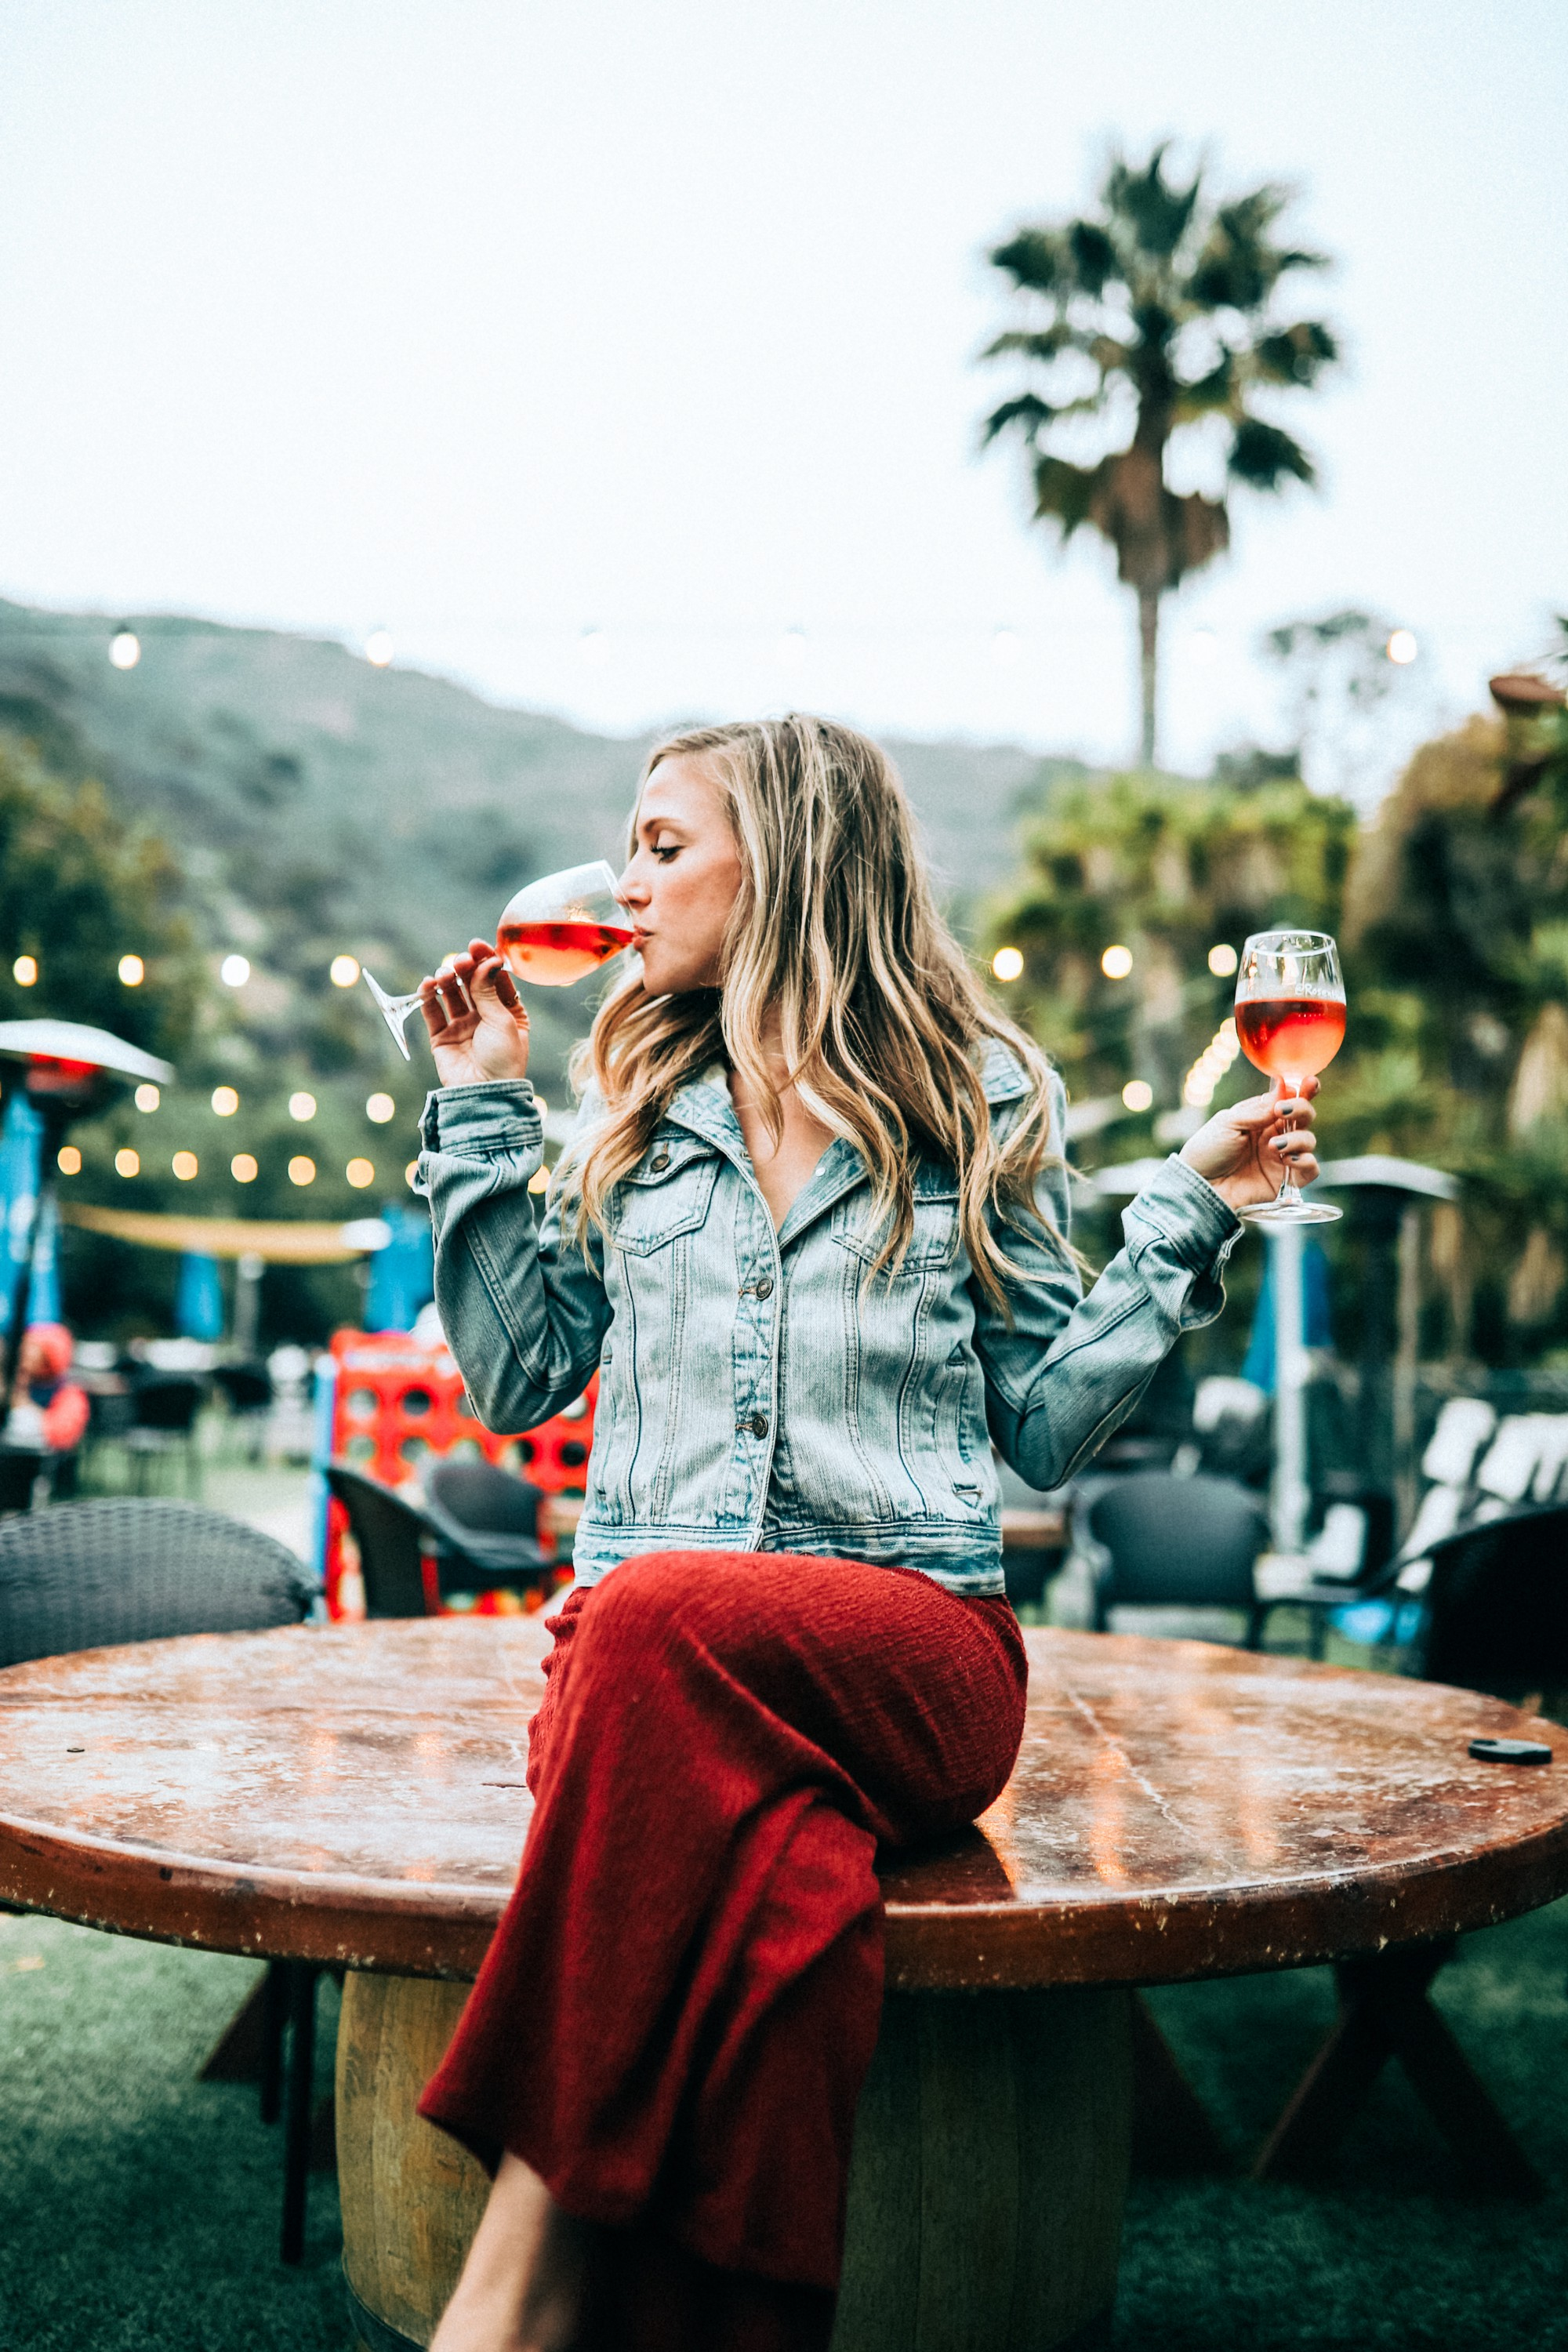 Woman holding a wine glass in each hand, while sipping from the one on the left.